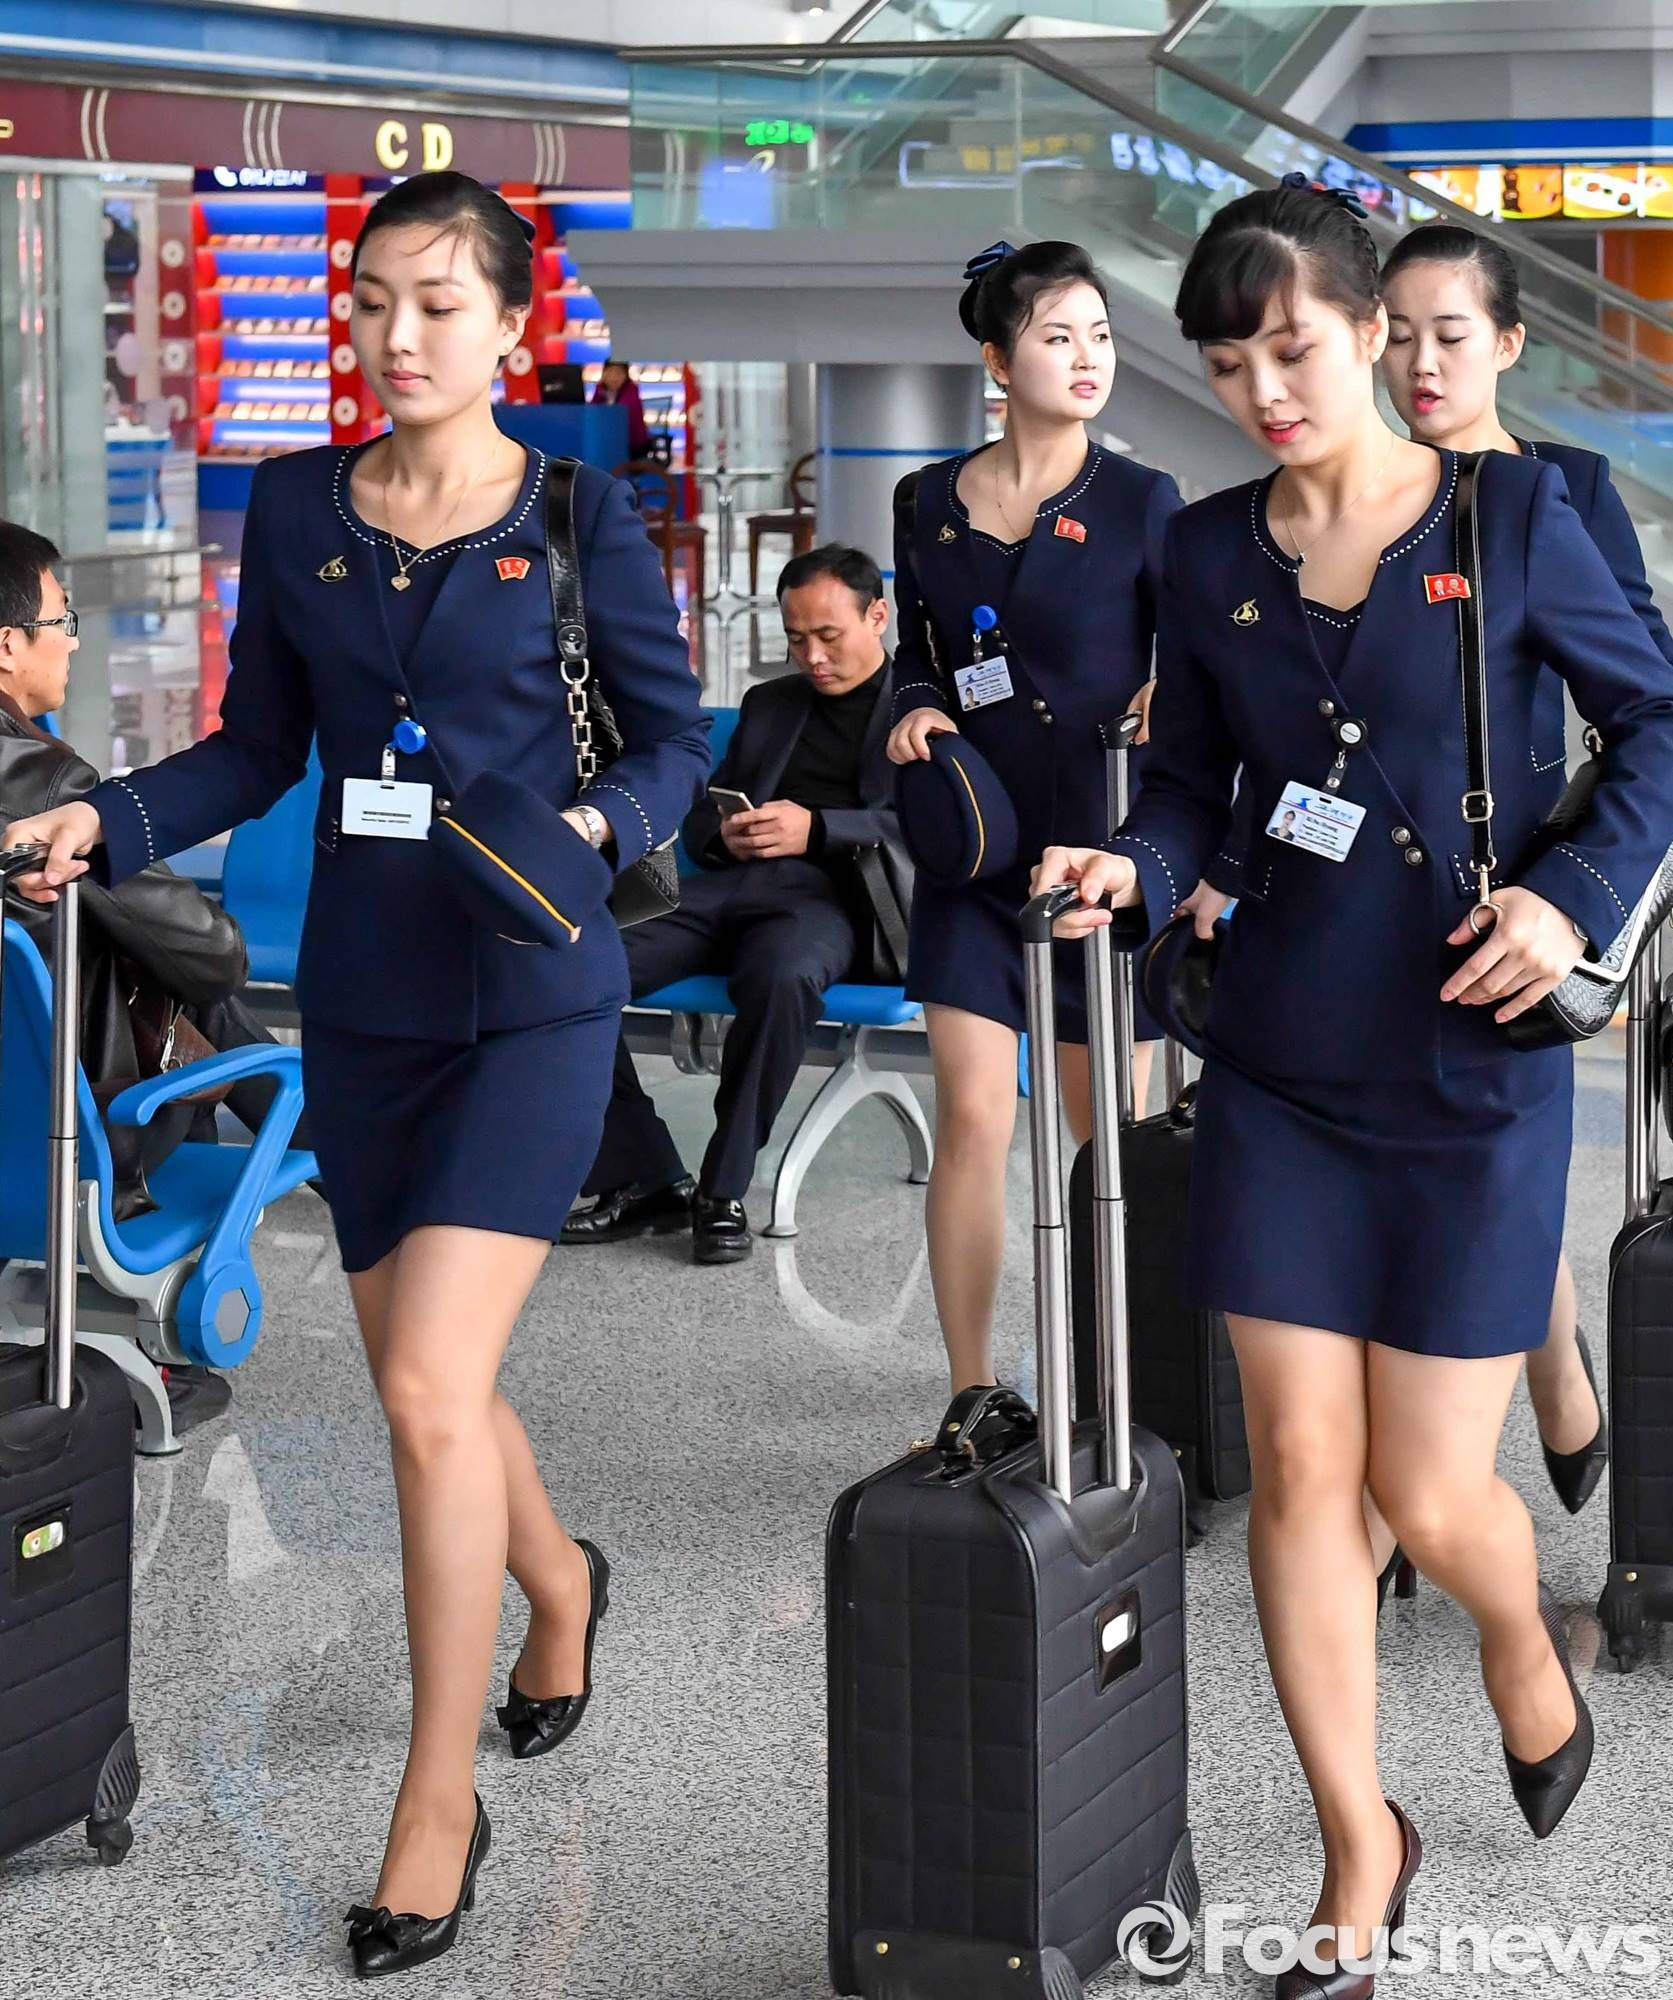 Pin by Sir Carloz on Mile High Club in 2019 | Flight attendant, Airline flights, Cabin ...